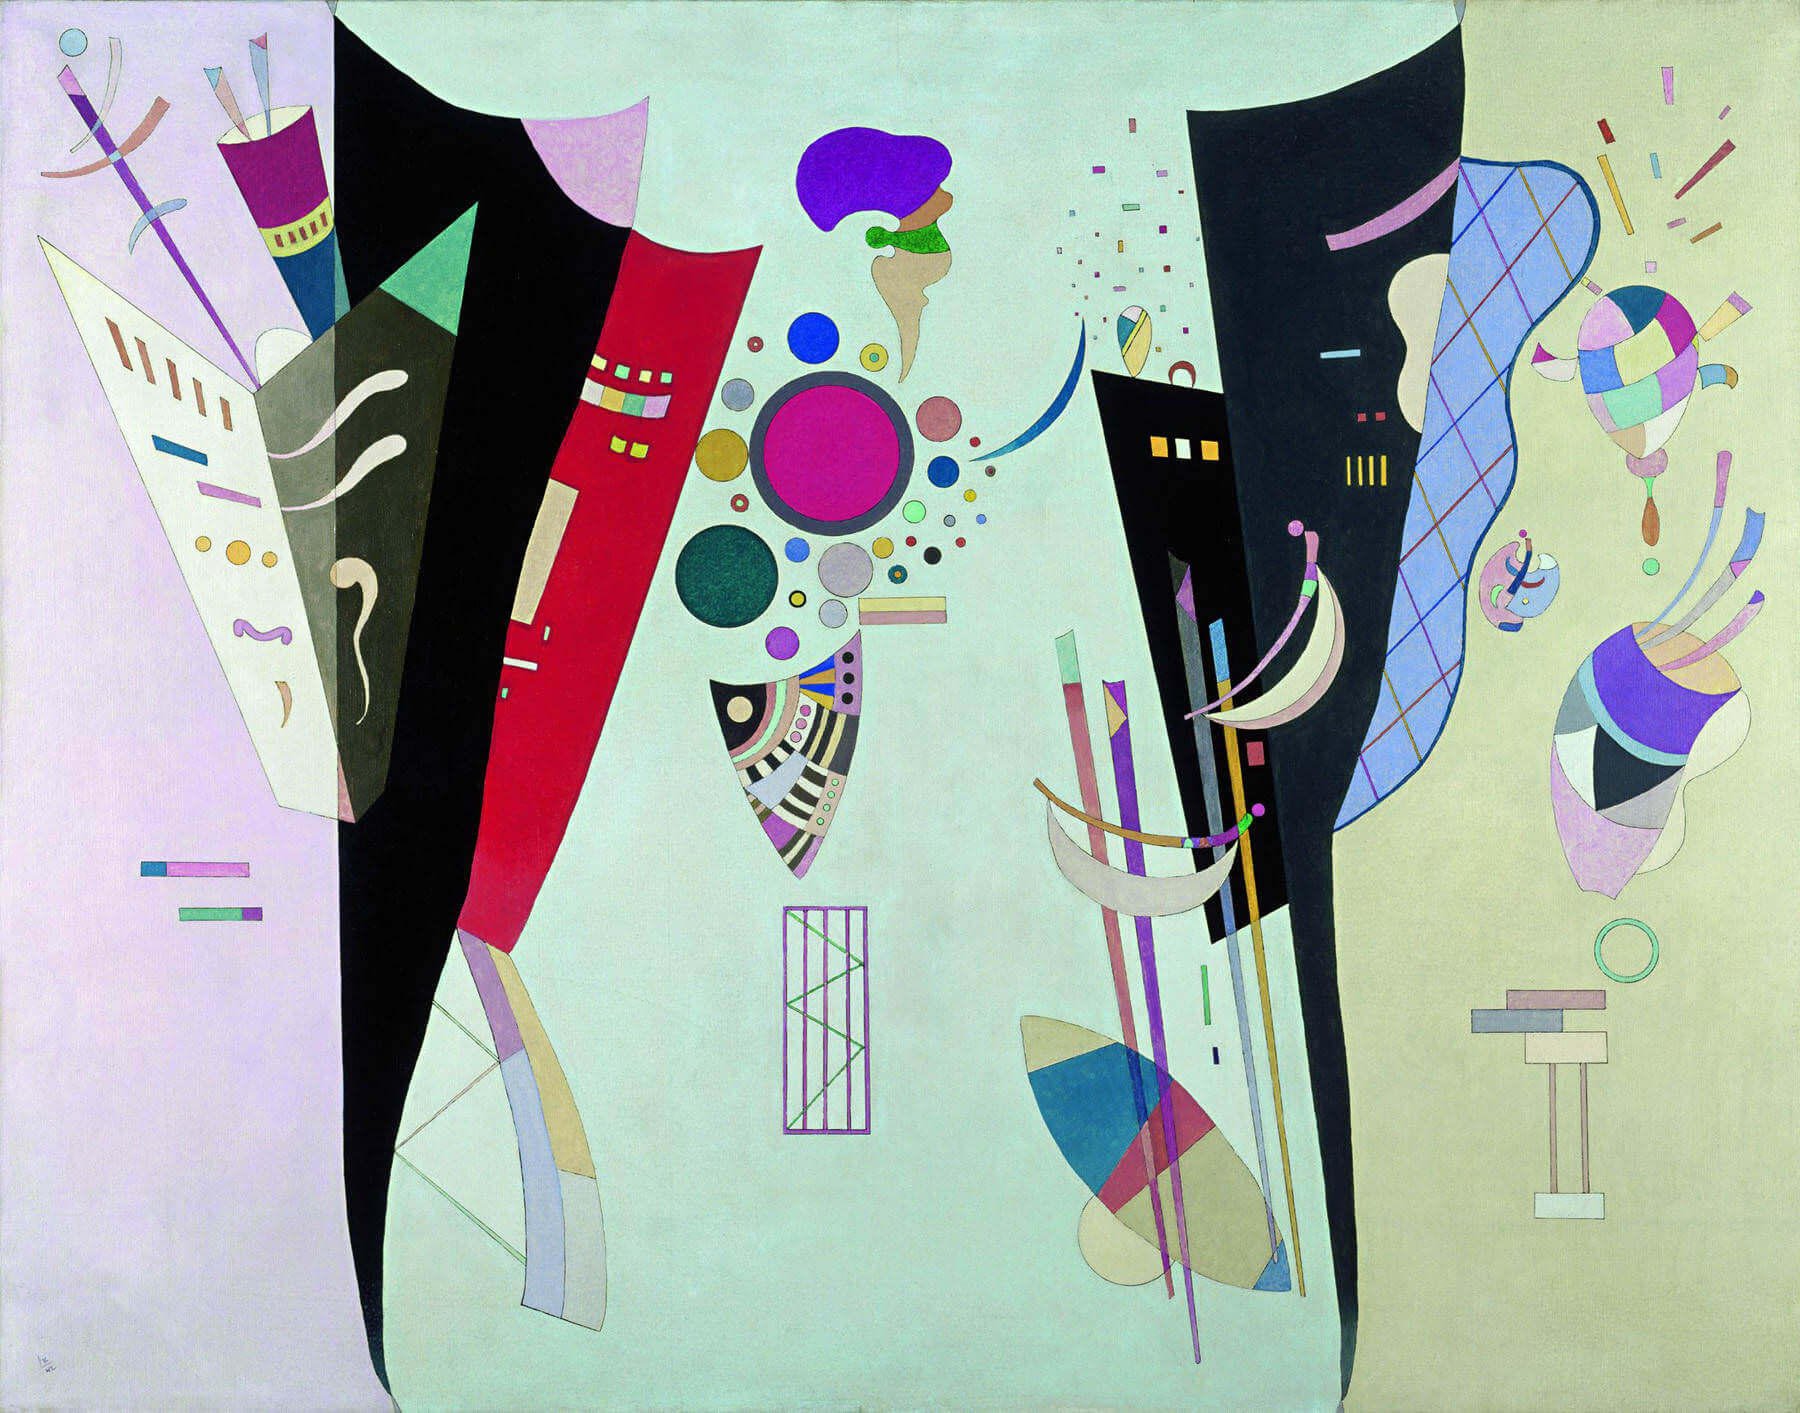 Reciprocal Accords, 1942 by Wassily Kandinsky